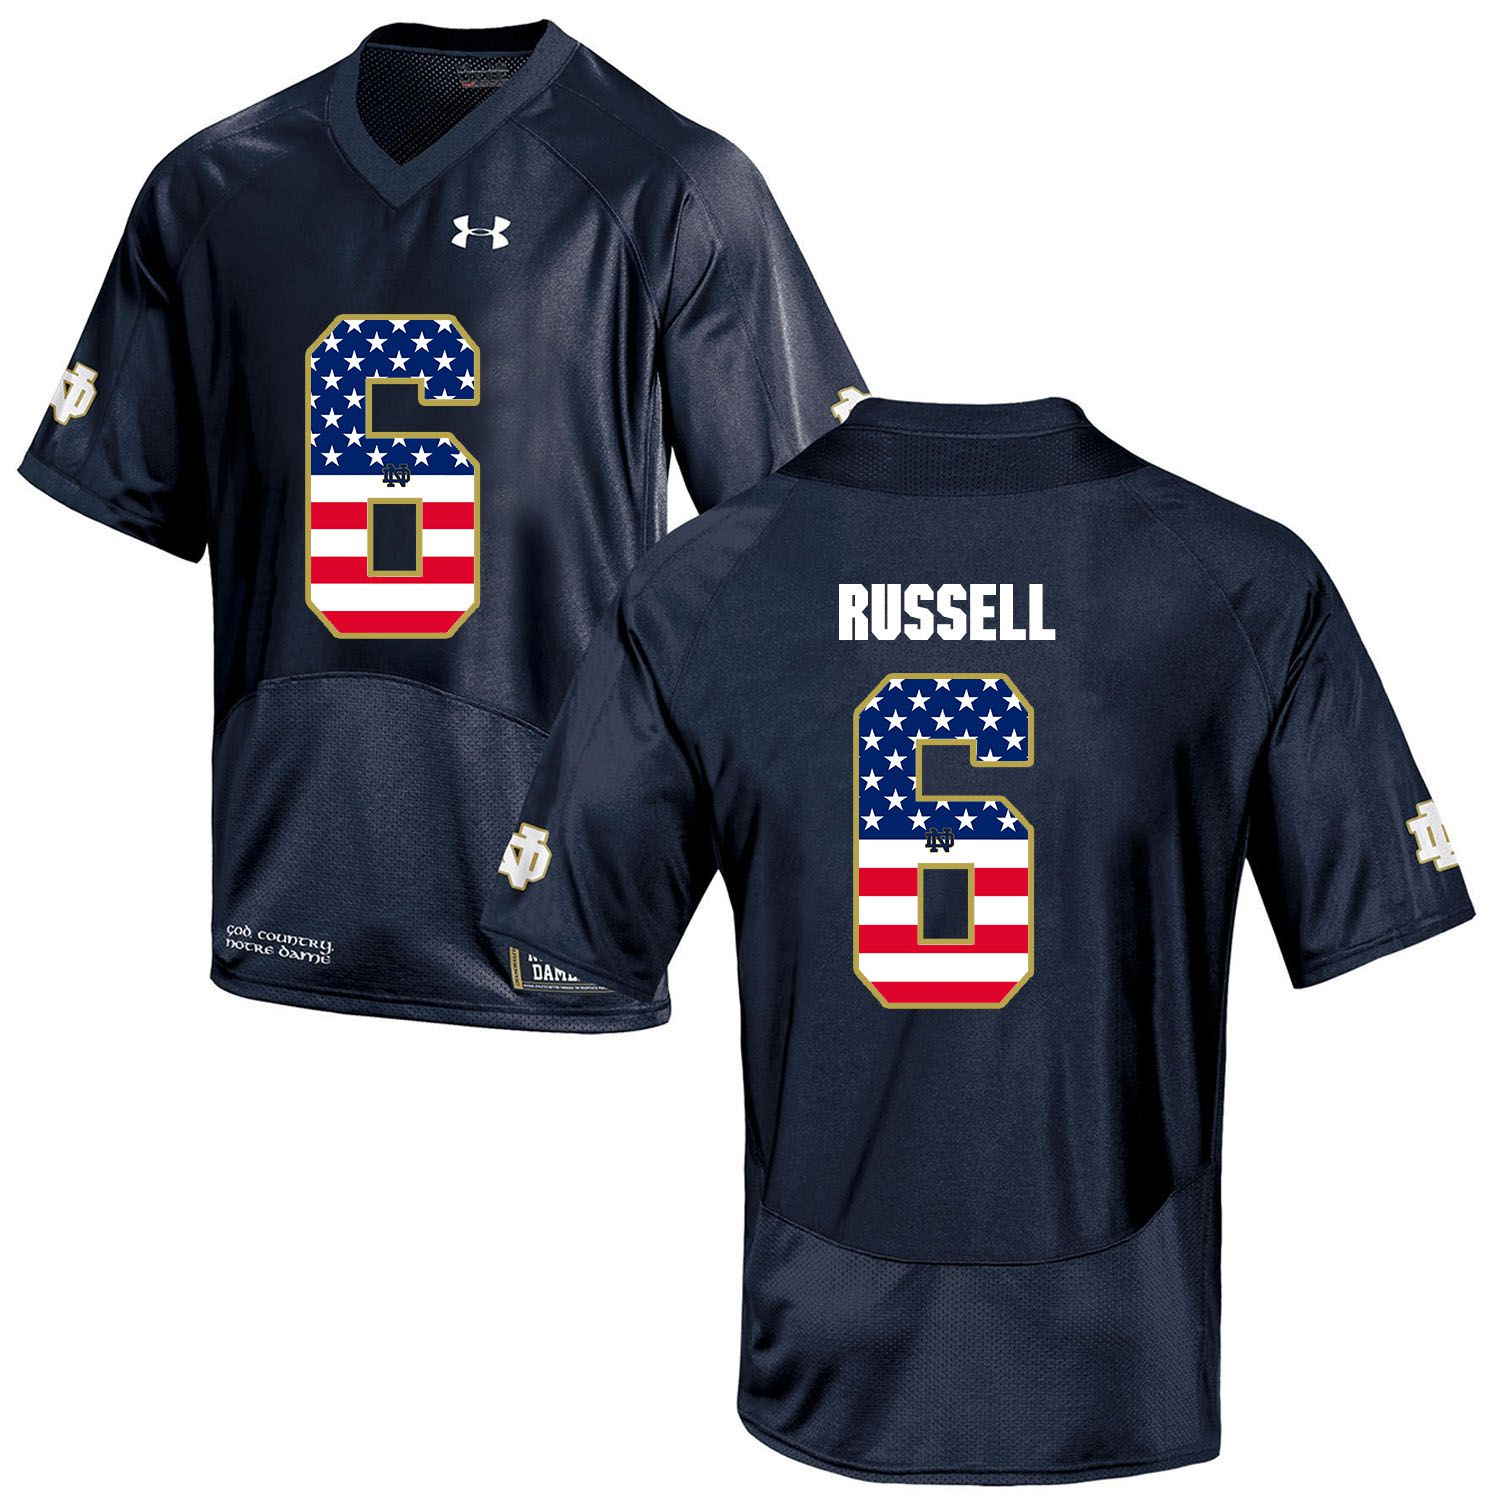 Men Norte Dame Fighting Irish 6 Russell Navy Blue Flag Customized NCAA Jerseys